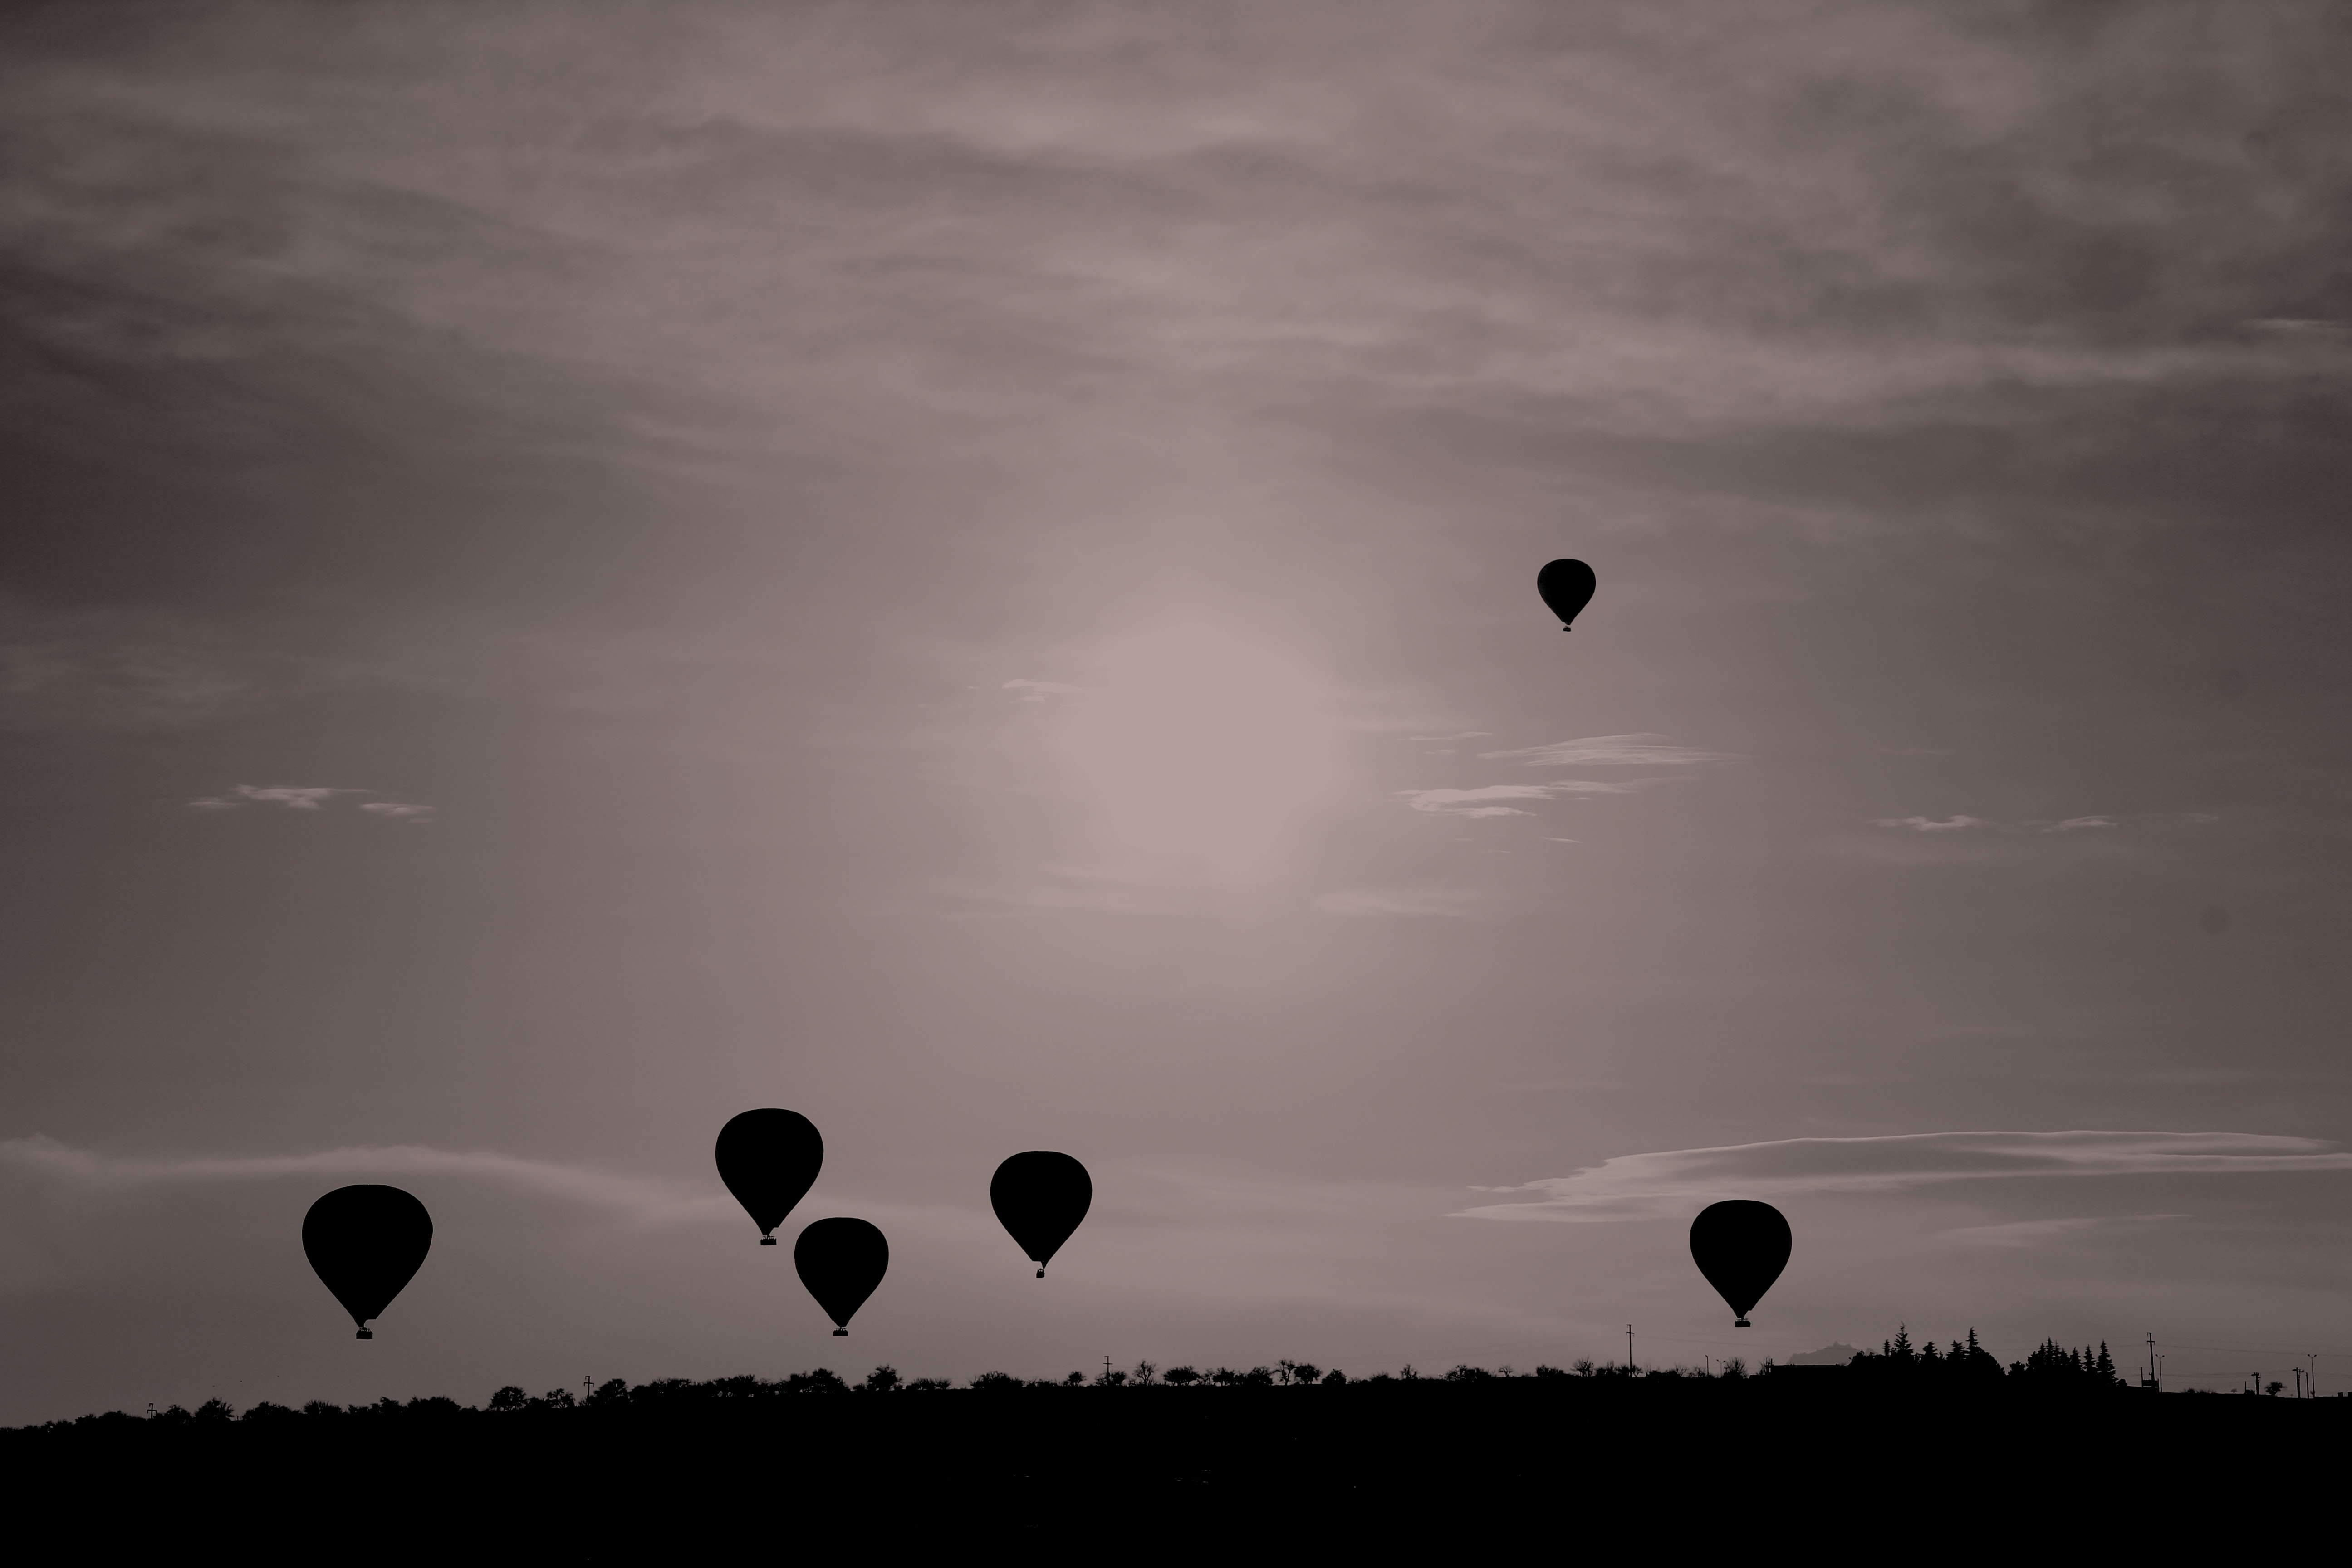 Silhouettes of hot air balloons fly across the sky